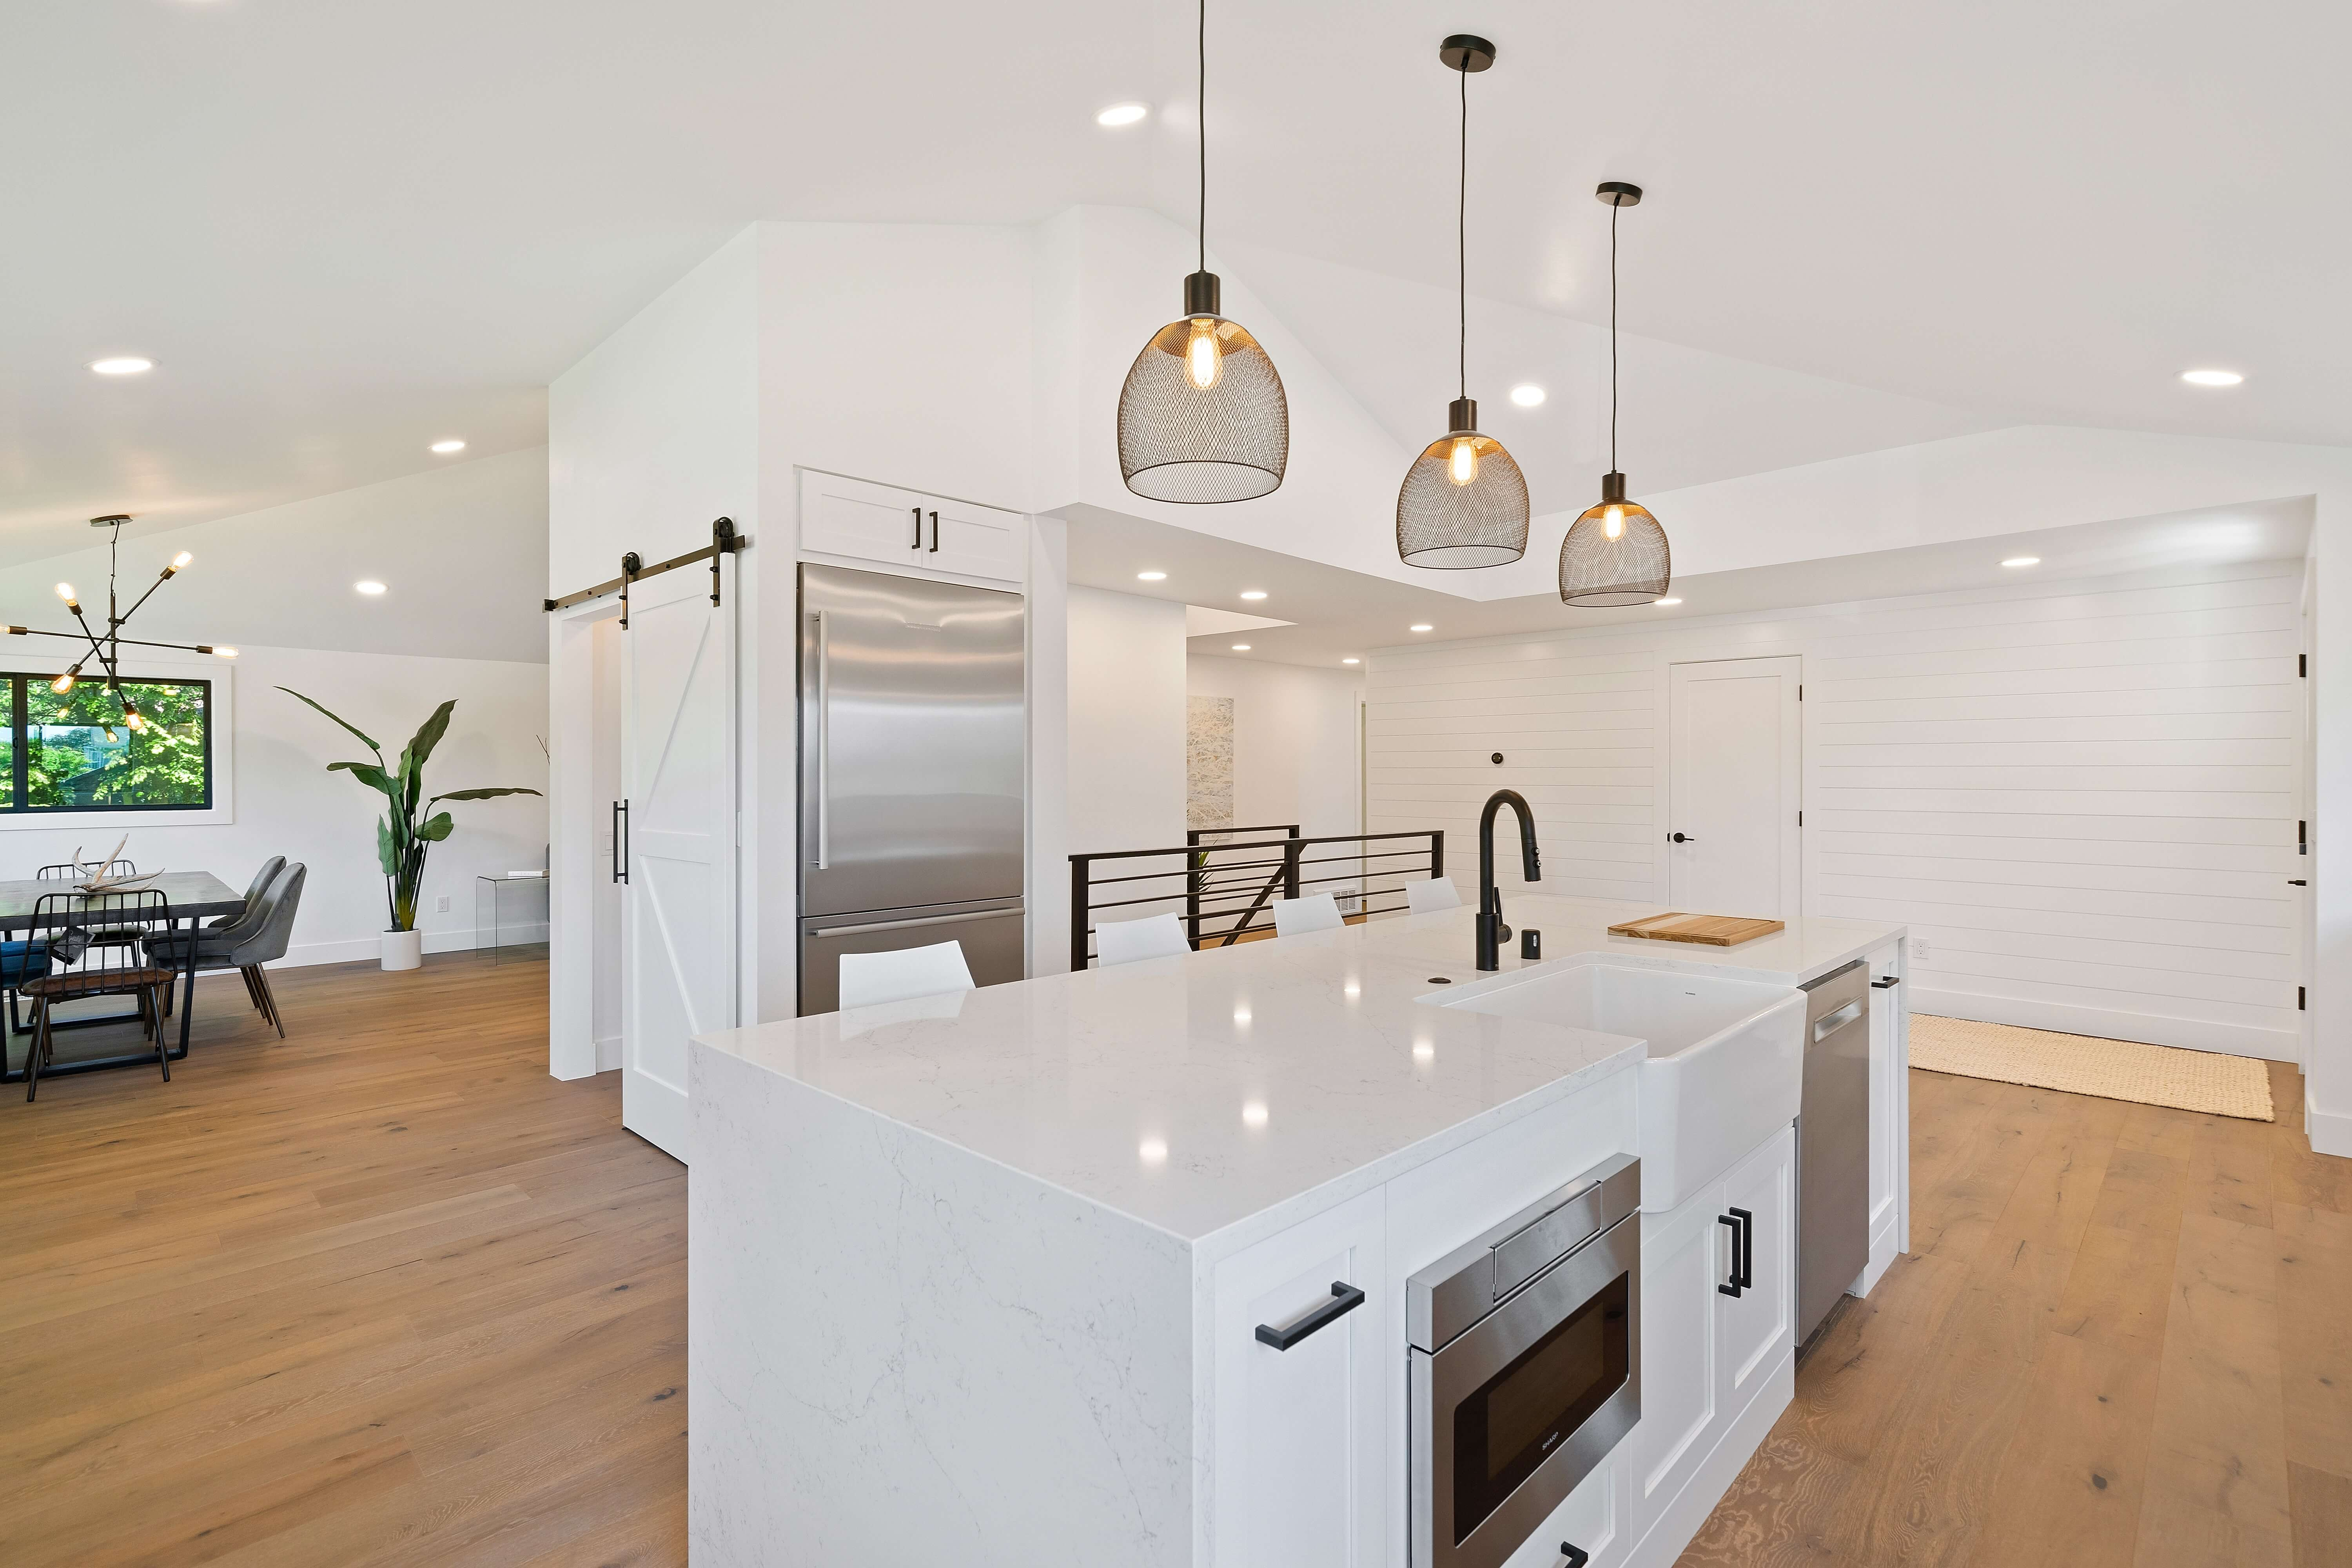 Three Tips For Lighting Your Dream Kitchen Three Tips For Lighting Your Dream Kitchen Interior Design Design News And Architecture Trends